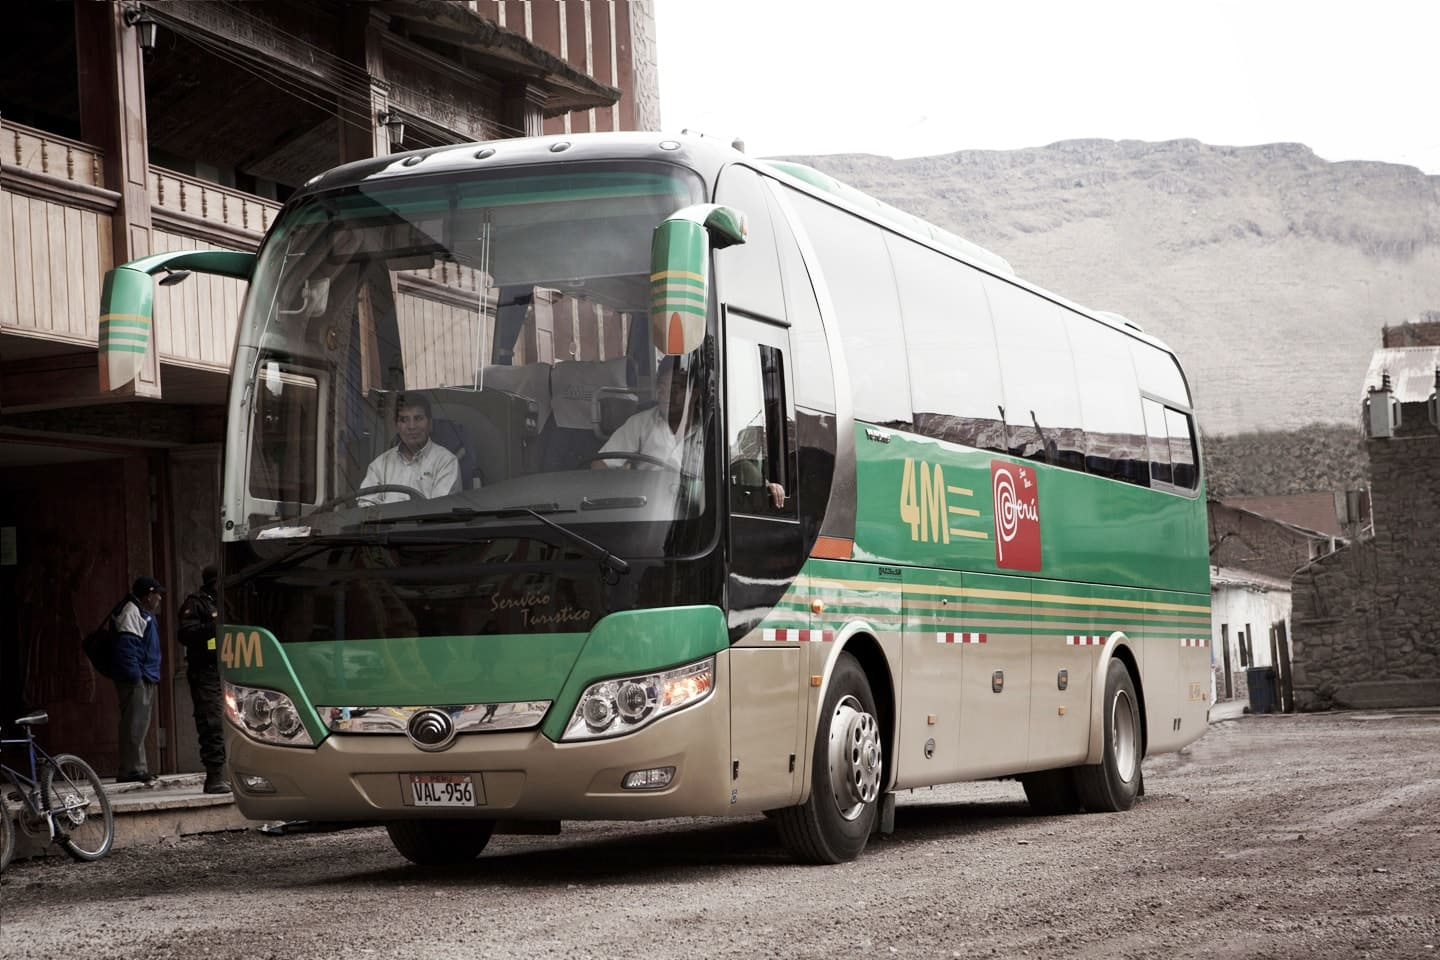 New Fleet of Buses, more comfortable, green, more capacities, better service added. Trust on us we are always improving. 4M Express